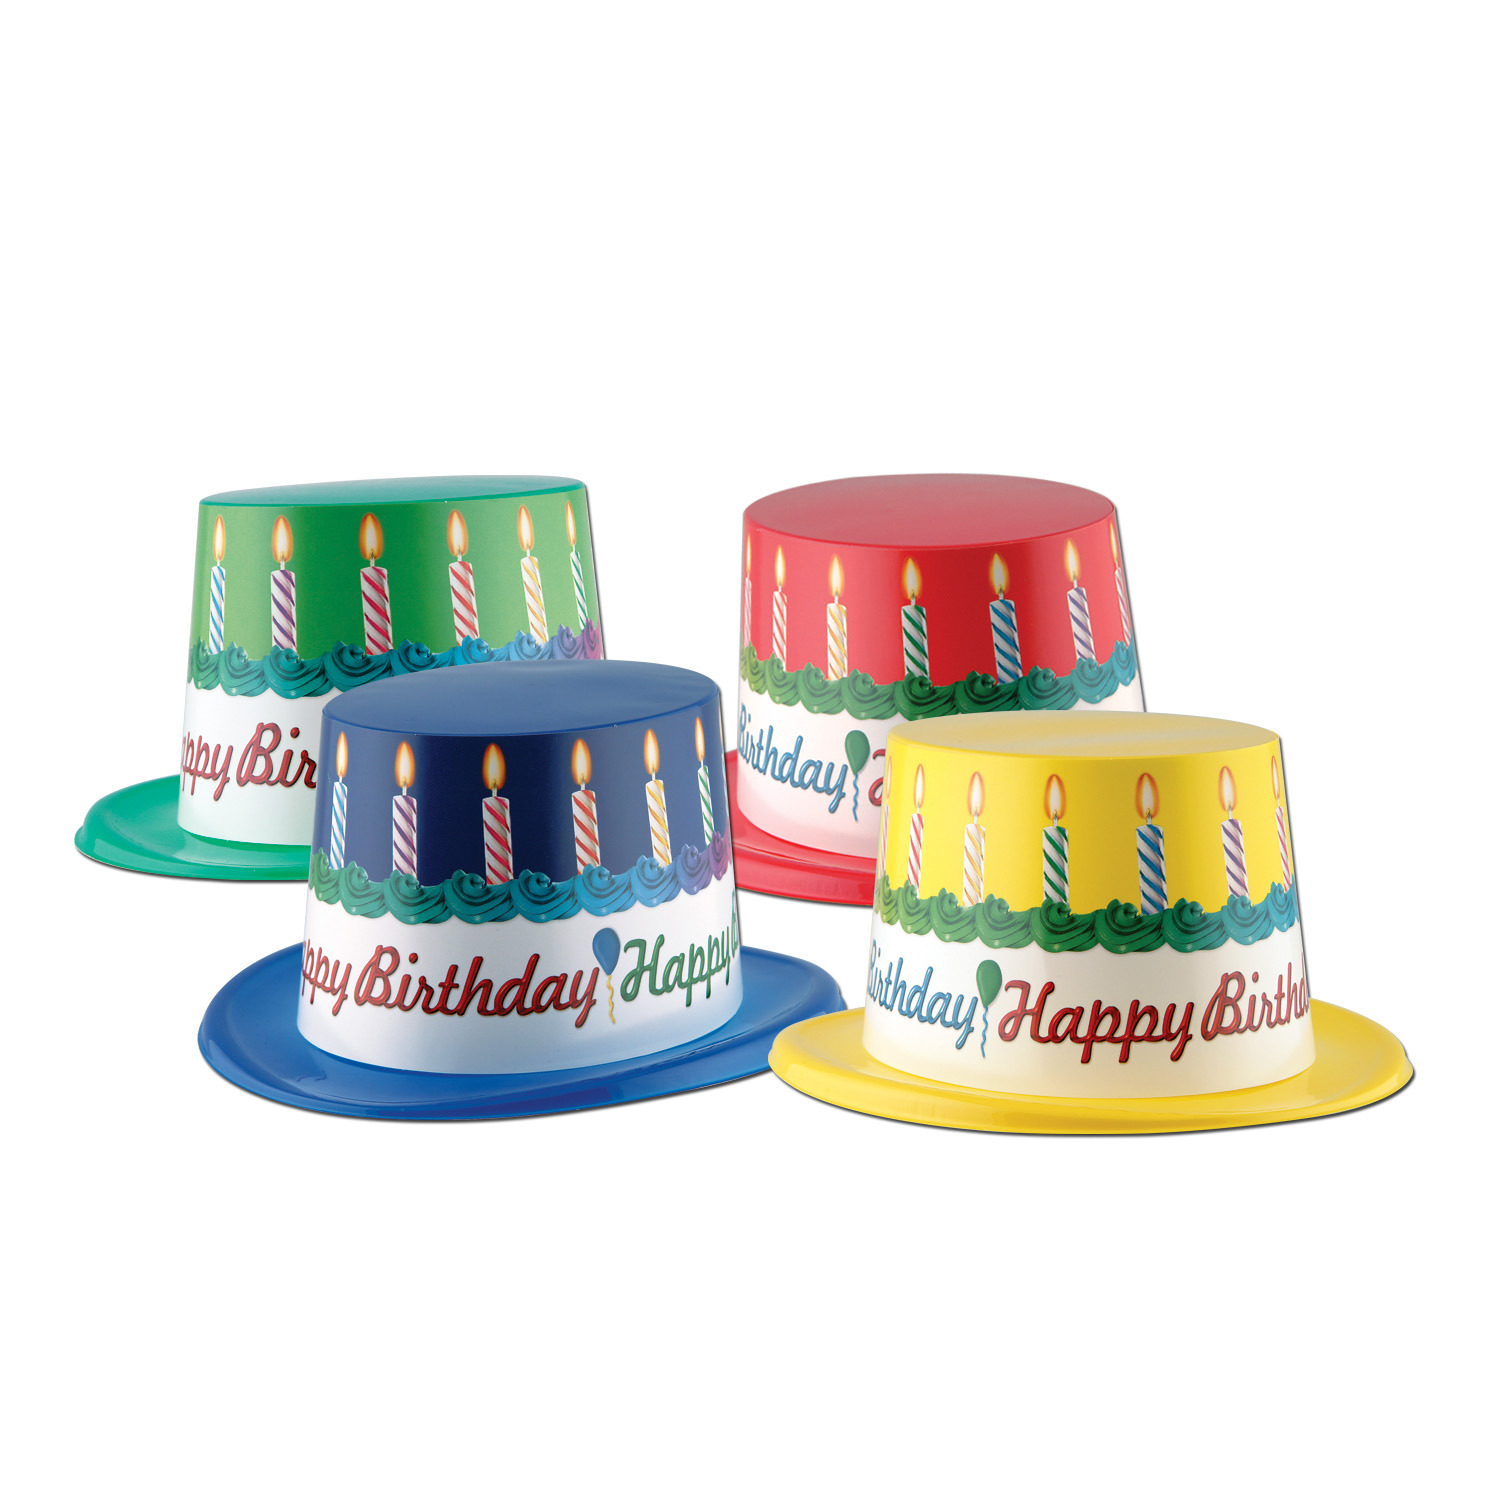 Plastic Toppers w/Happy Birthday Band (Pack of 25) Hats, plastic, birthday hats, celebration, birthday party